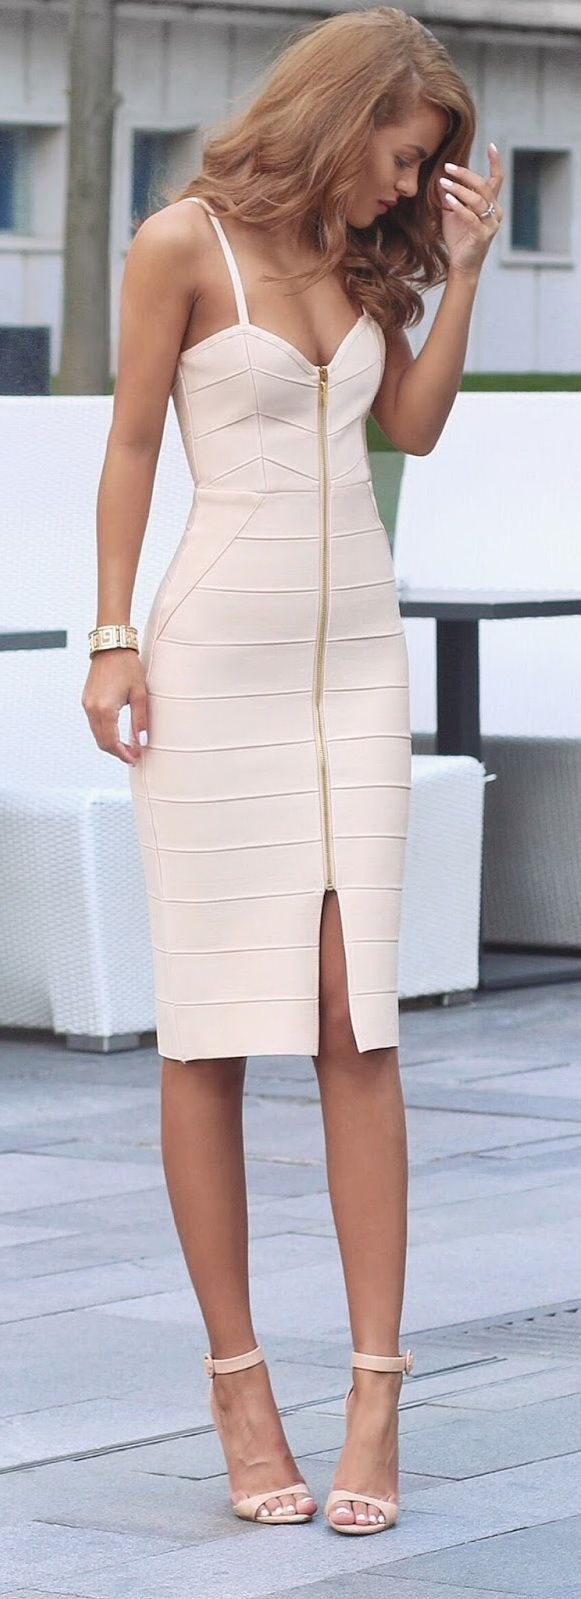 1000  ideas about Nude Dress on Pinterest | Chic summer outfits